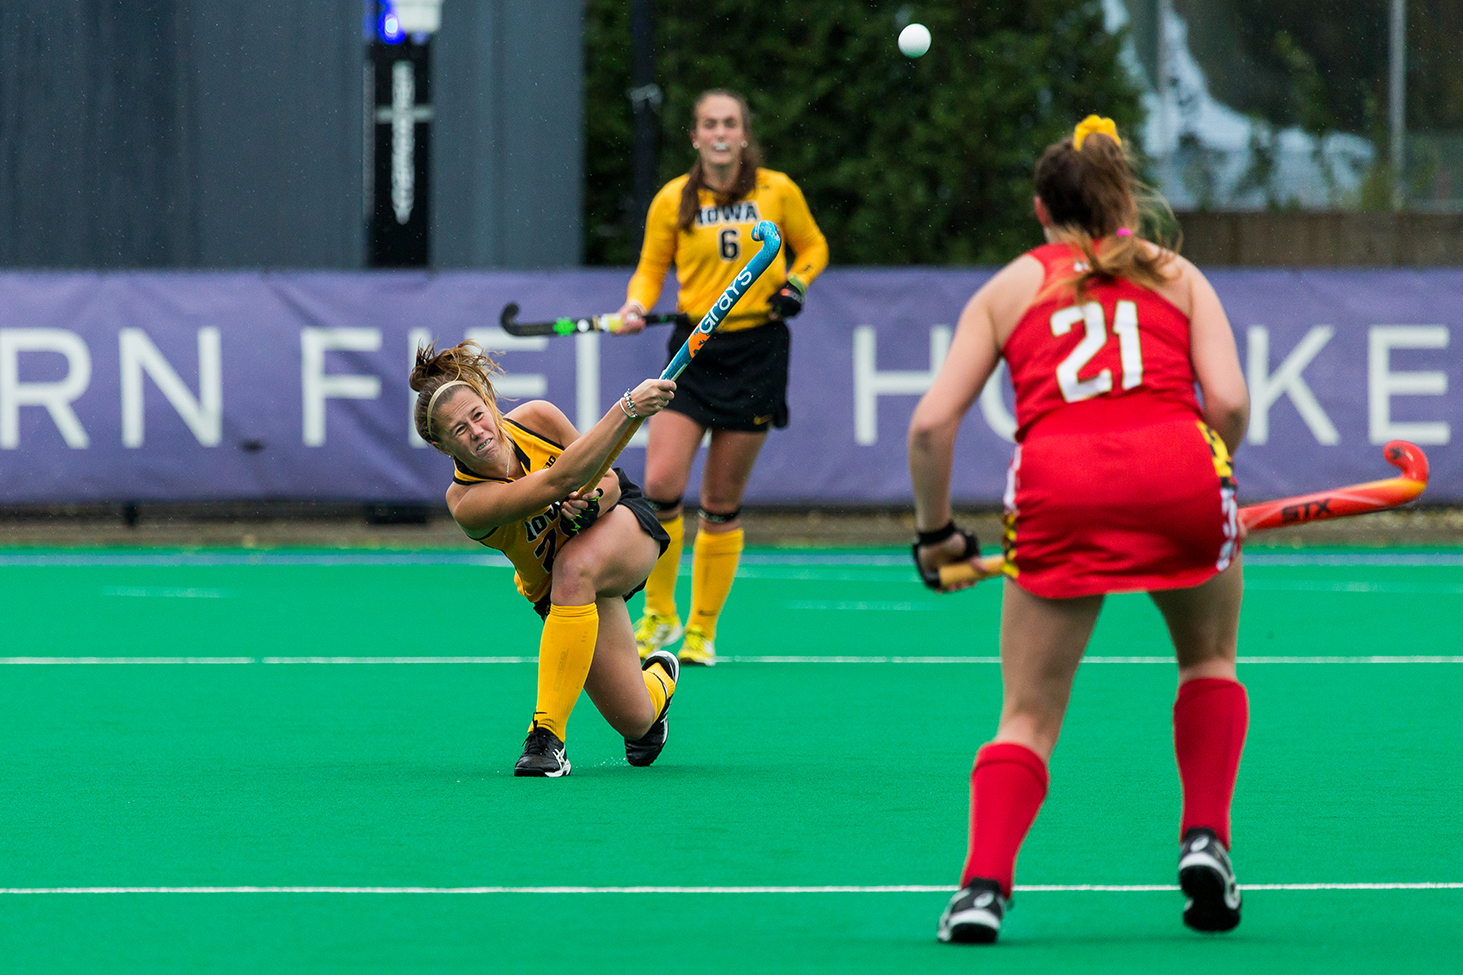 Iowa midfielder Sophie Sunderland lofts the ball during the Championship Game in the Big Ten Field Hockey Tournament at Lakeside Field in Evanston, IL on Sunday, Nov. 3, 2018. The no. 2 ranked Terrapins defeated the no. 8 ranked Hawkeyes 2-1.